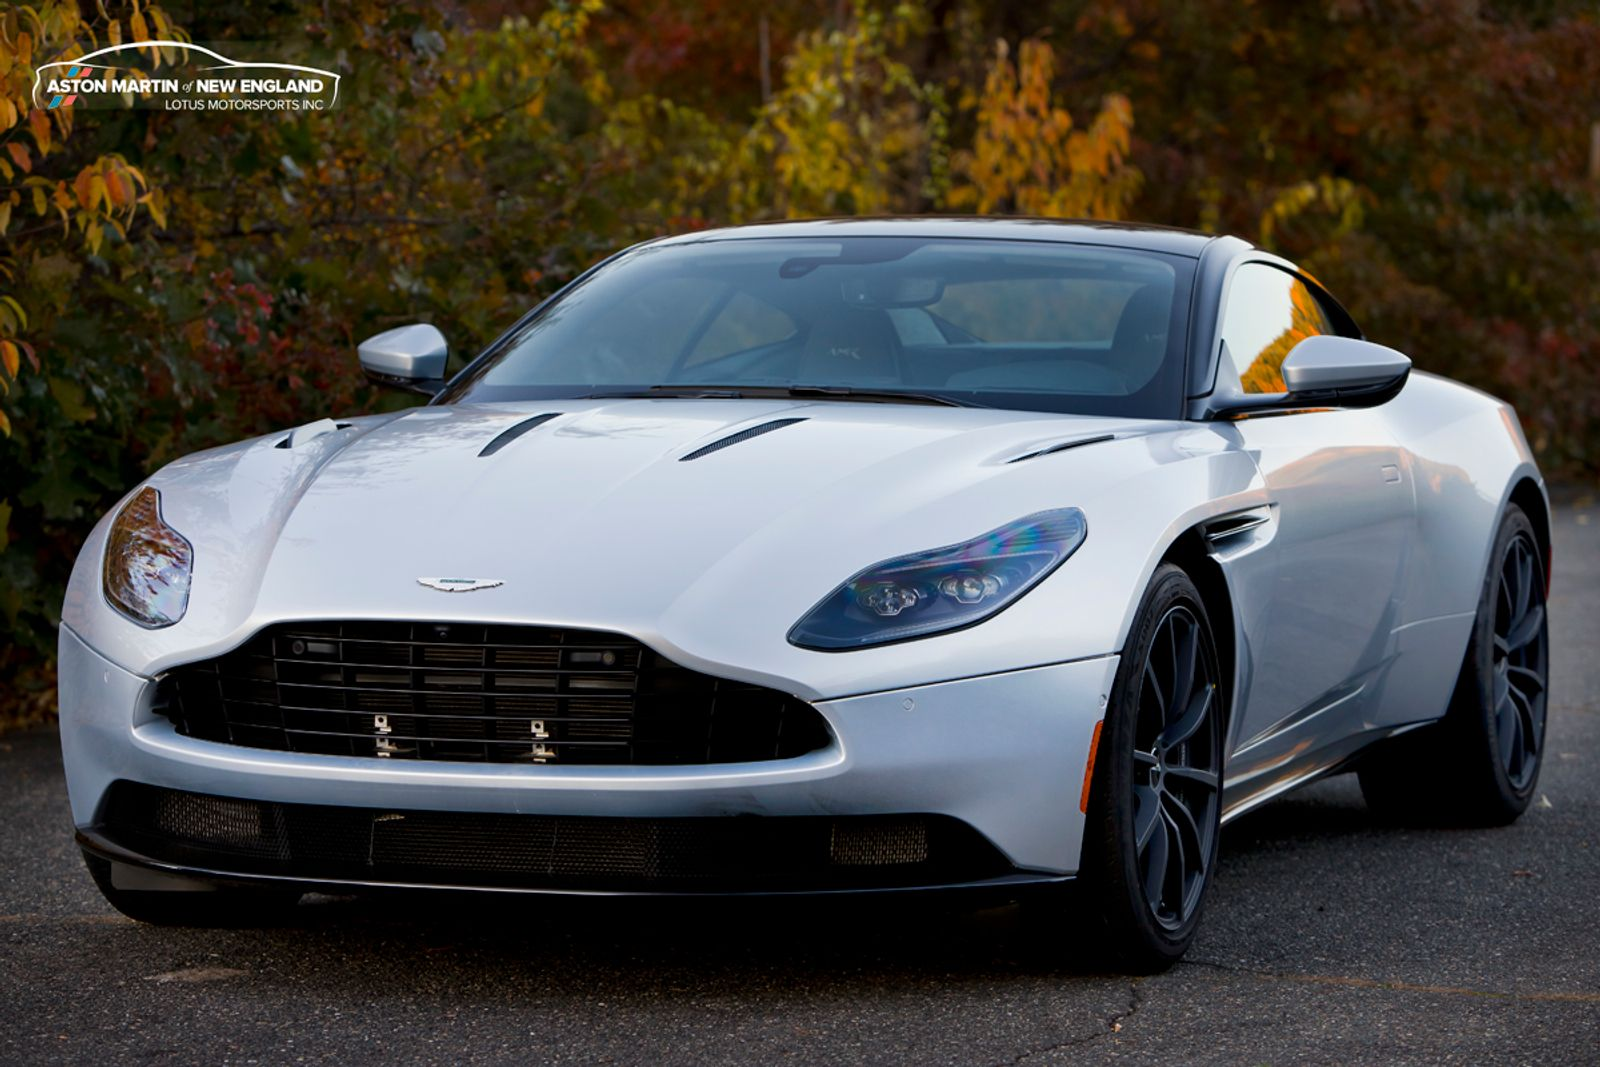 2019 aston martin db11 amr city ma aston martin of new england 2019 aston martin db11 amr city ma